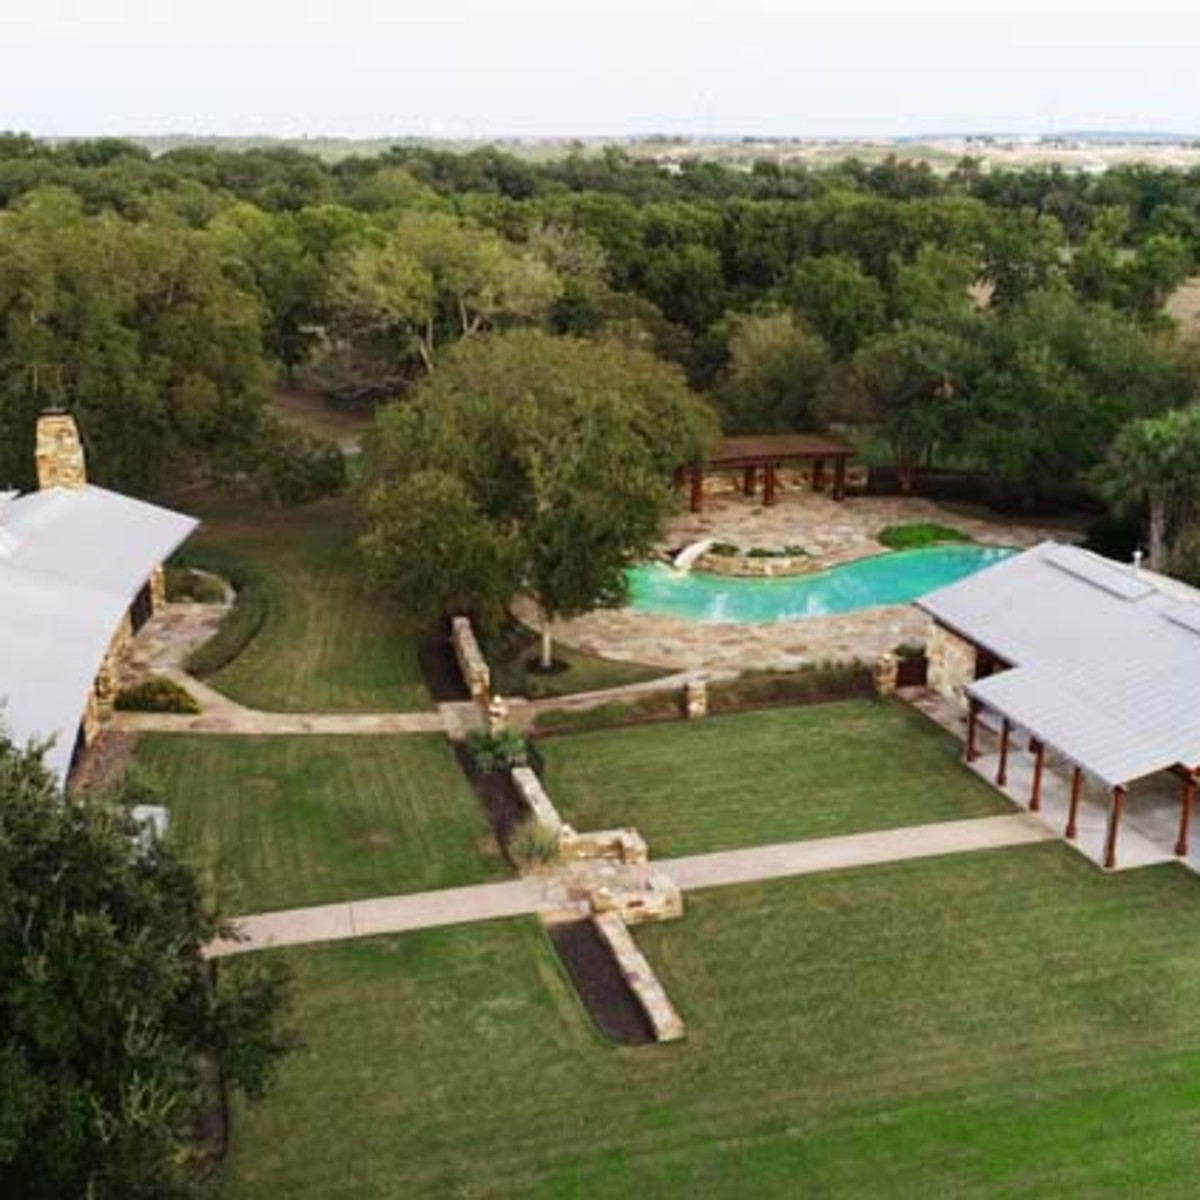 4301 FM 973 ranch in Del Valle